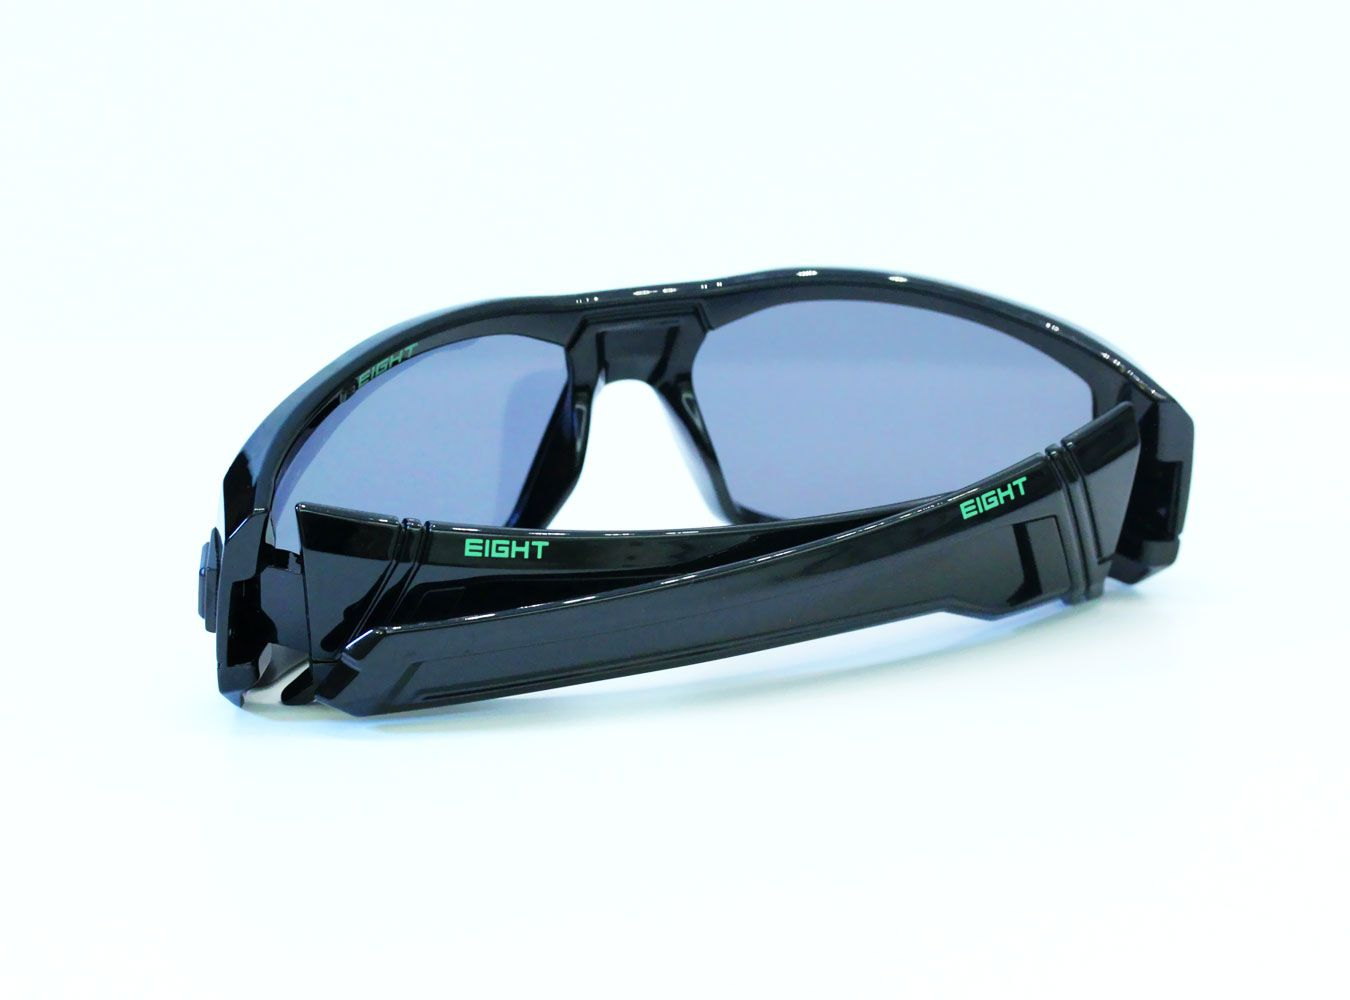 0b3f519ae9 Glossy Black Green V.1 from EIGHT Eyewear WWW.IWEAR8.COM  8eyewear   sunglasses  shades  cool  mensfashion  fashion  style  summer  eight   sports  design